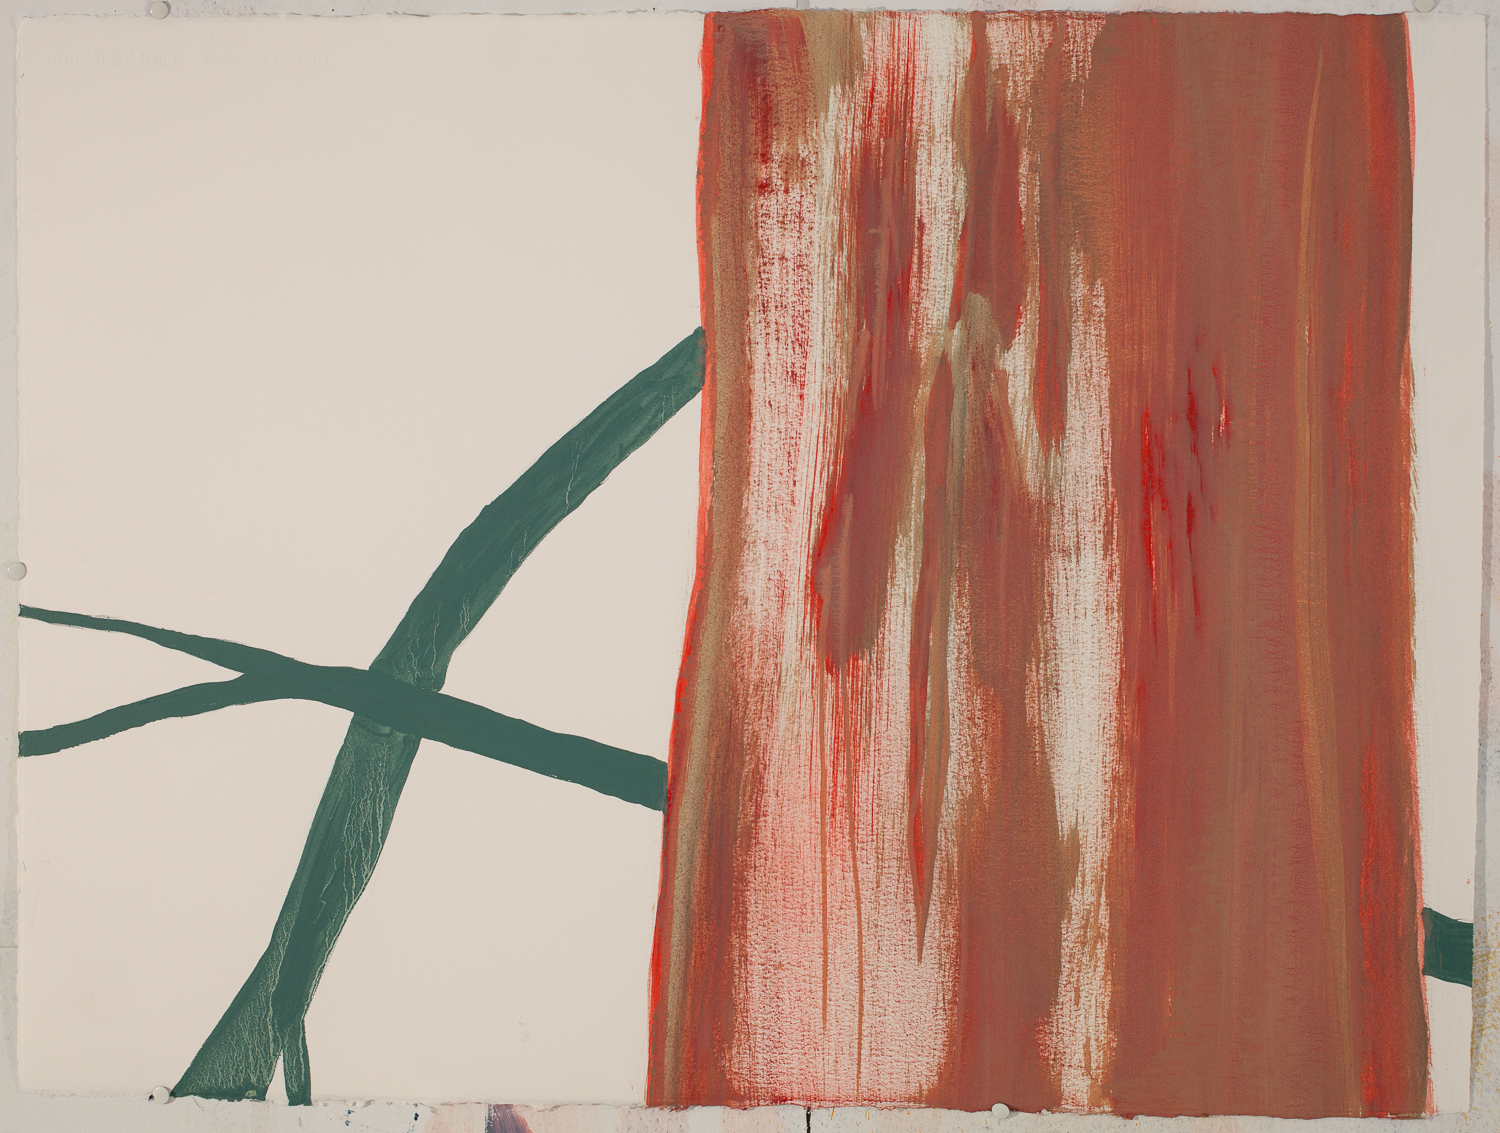 Land Red Tree New / Oil on Arches l'Huile Paper / 22 inches high by 30 inches wide / 2015